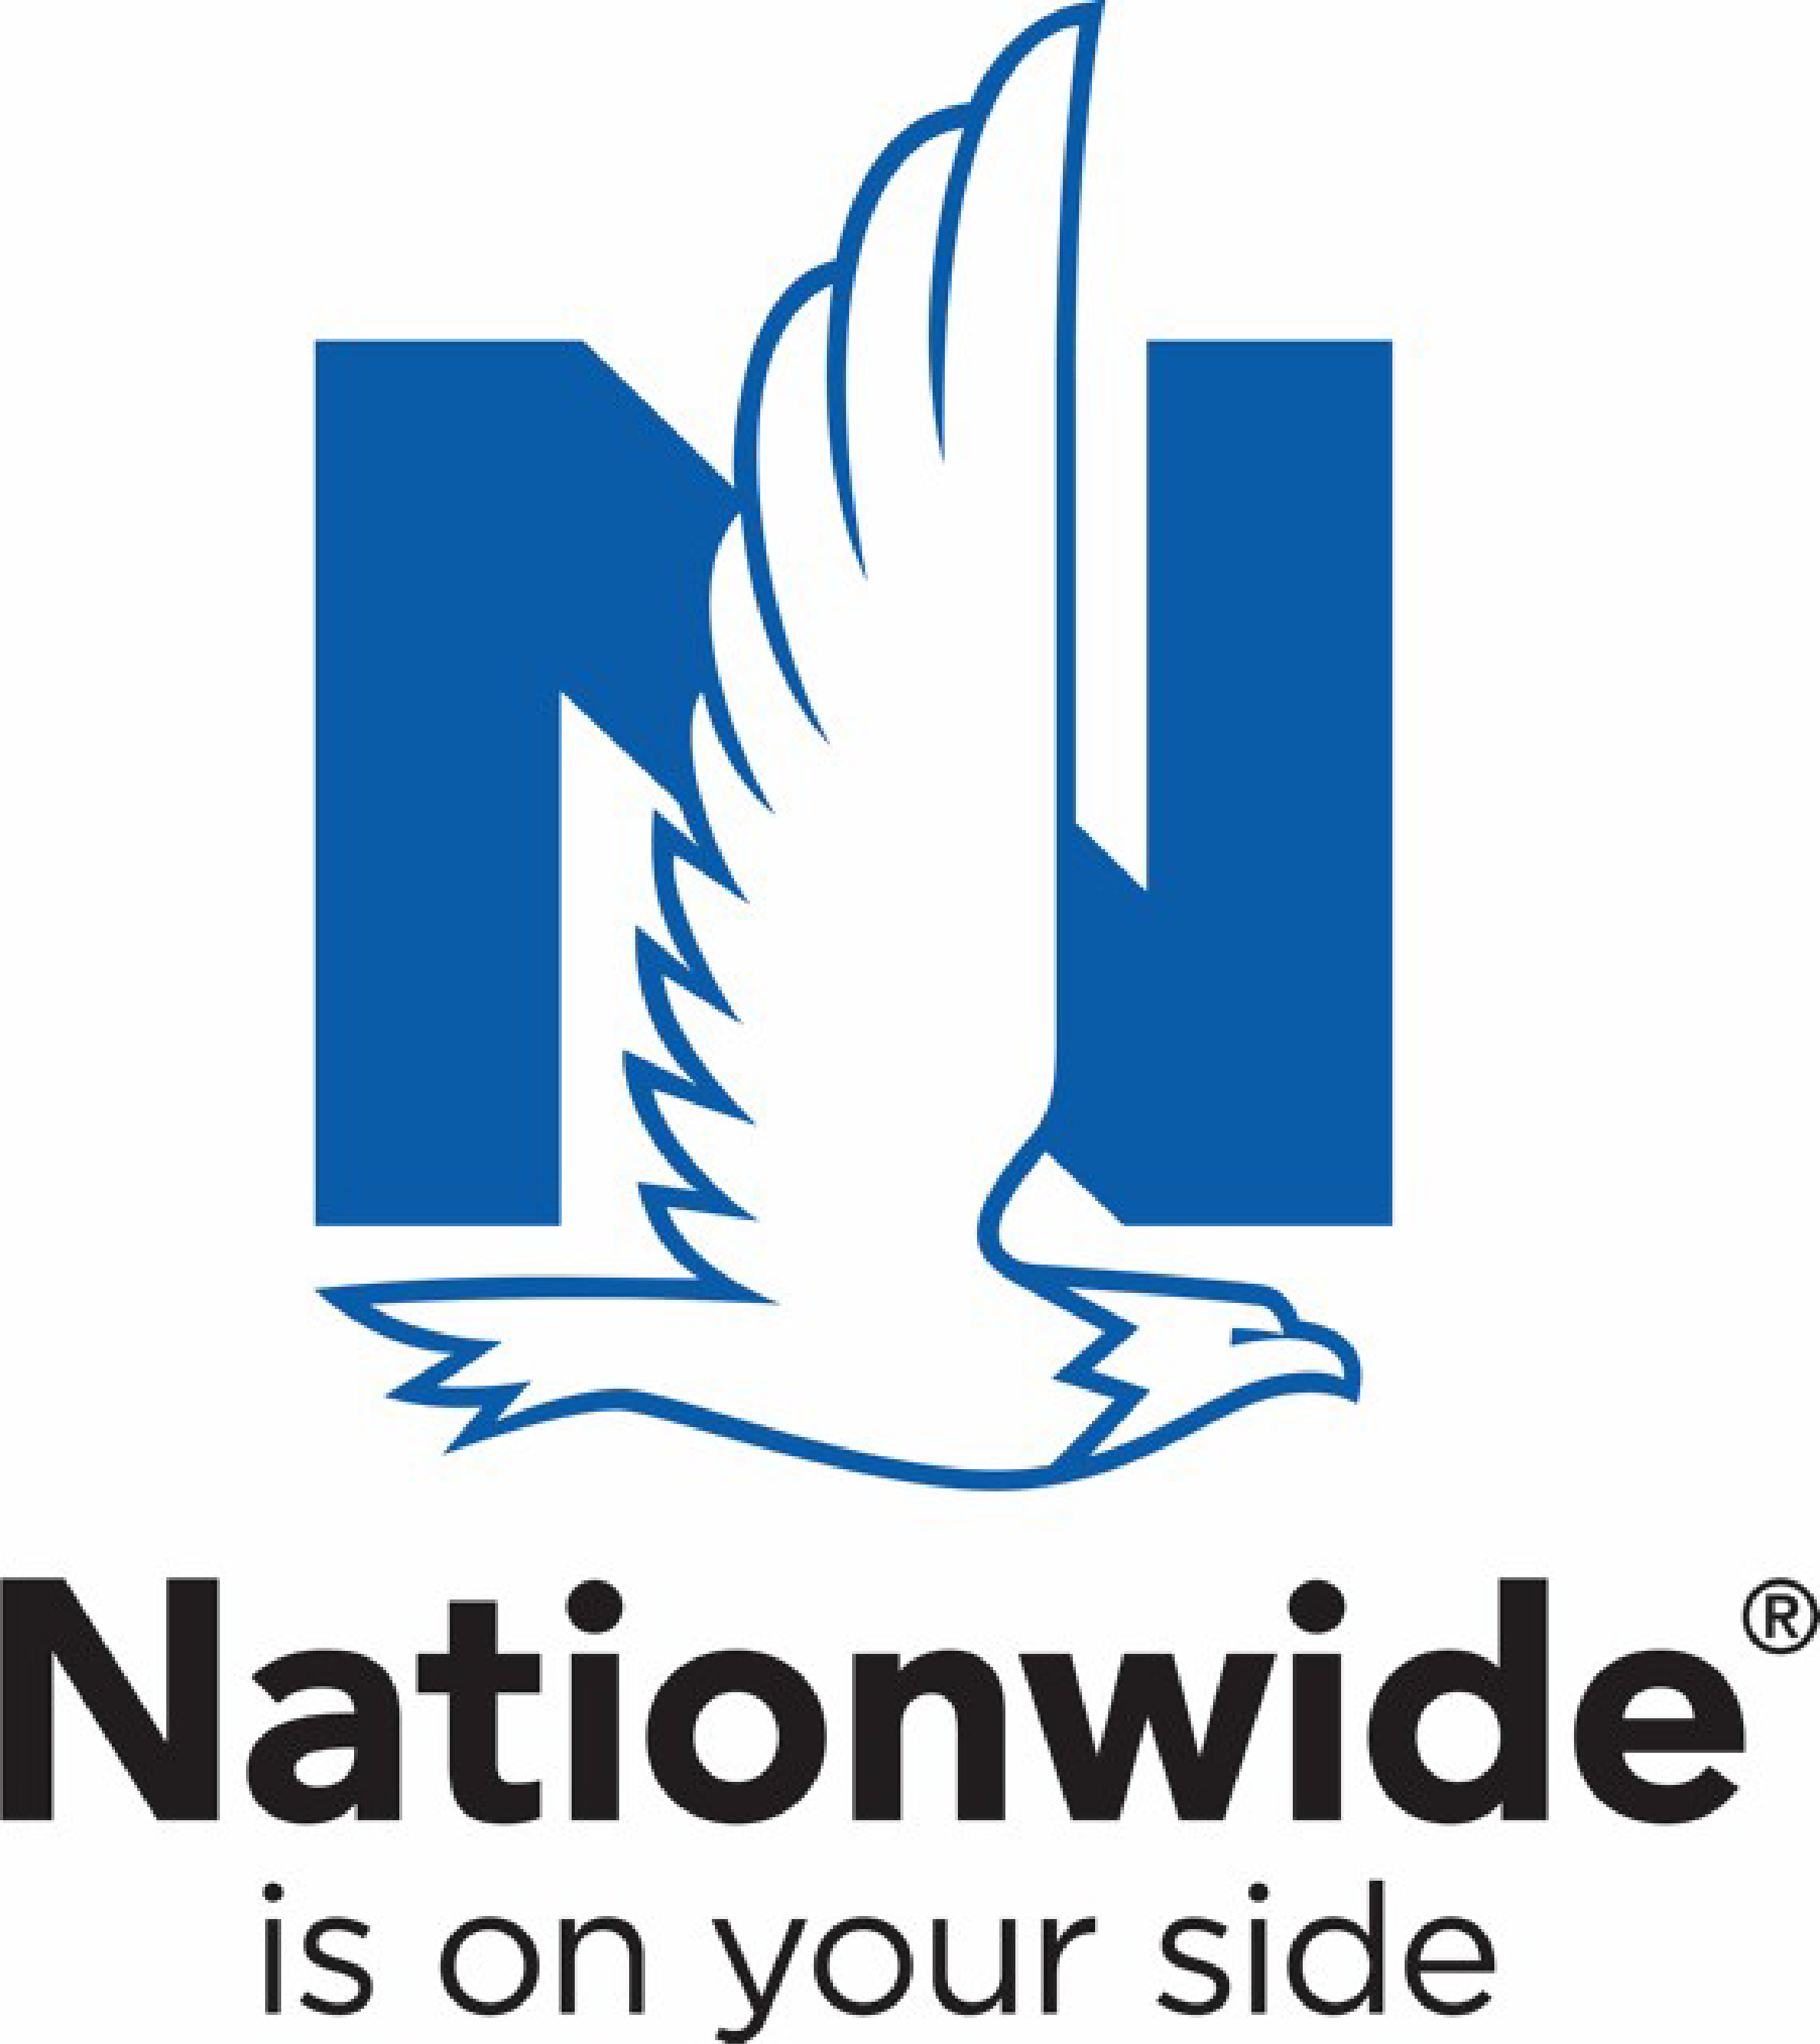 Nationwide-Lrg